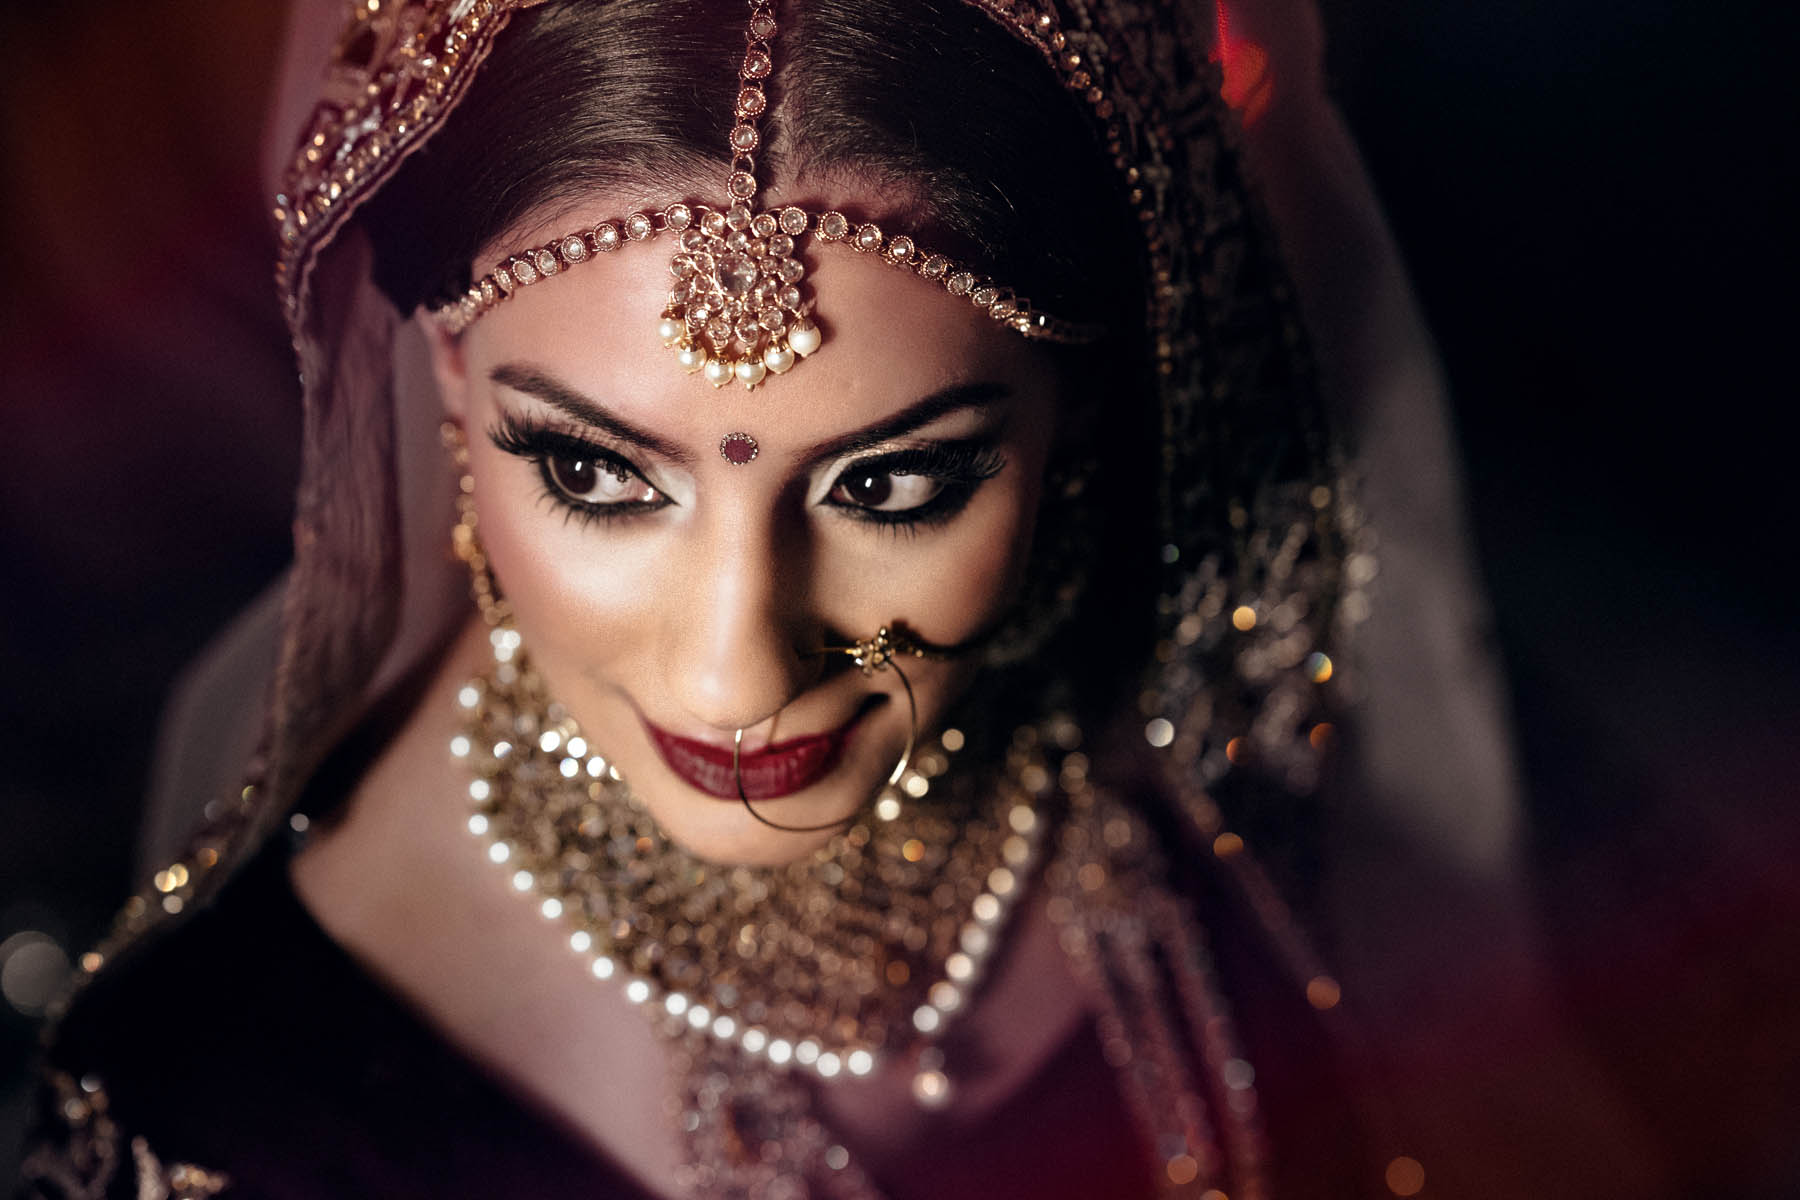 Top 5 Fall 2019 Makeup Trends For The Charismatic Bridal Avatar